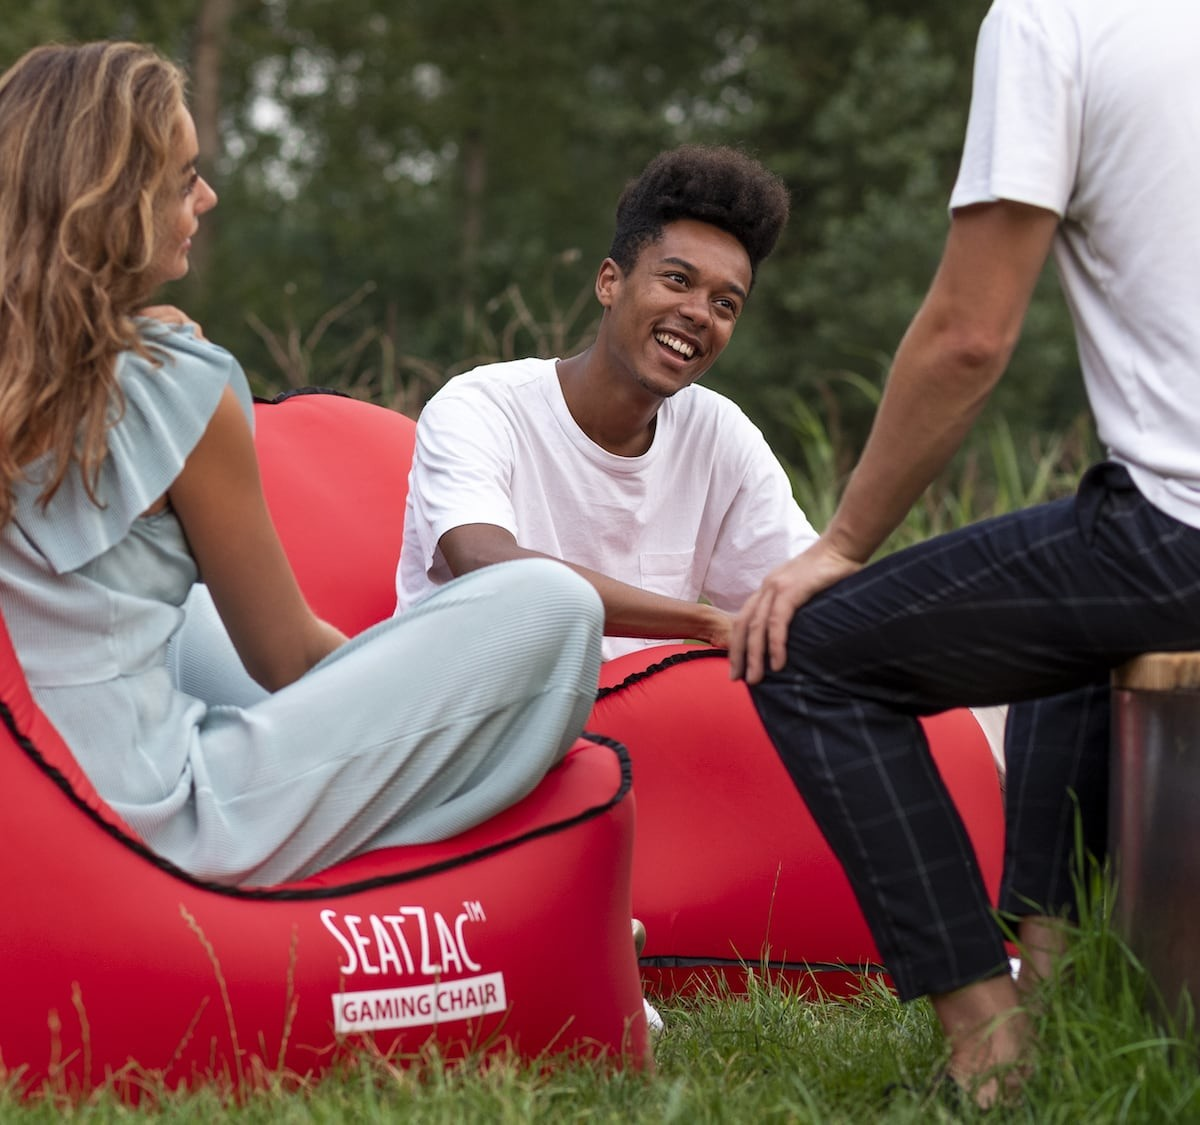 SEATZAC™️ incredible self-inflatable chair even has a built-in power bank